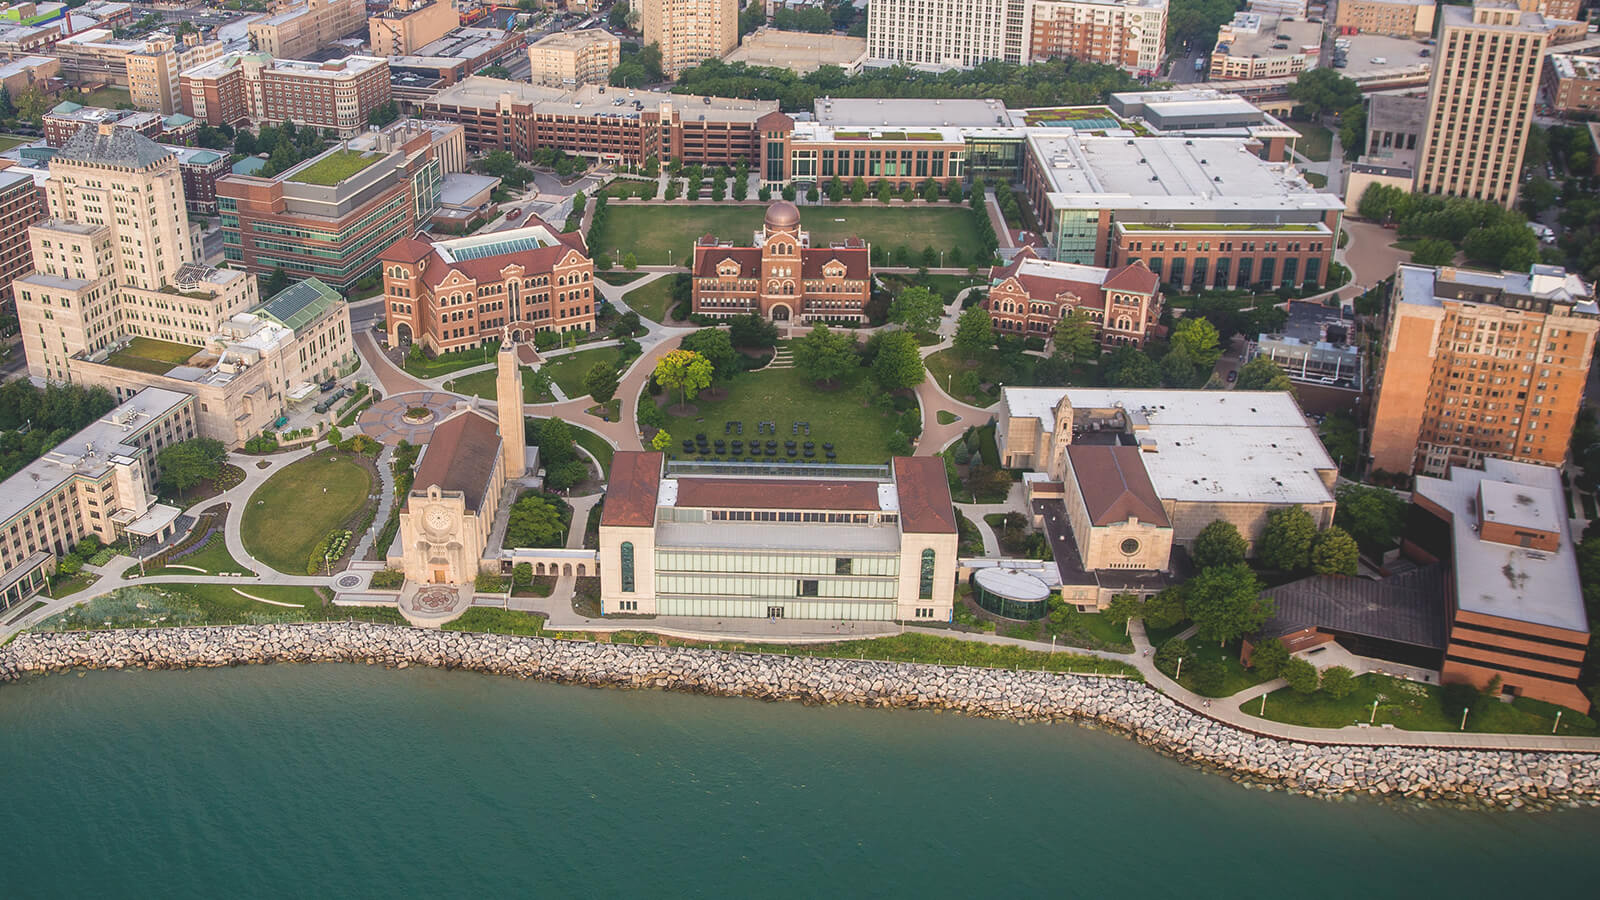 An overhead view of the Loyola University Chicago campus.